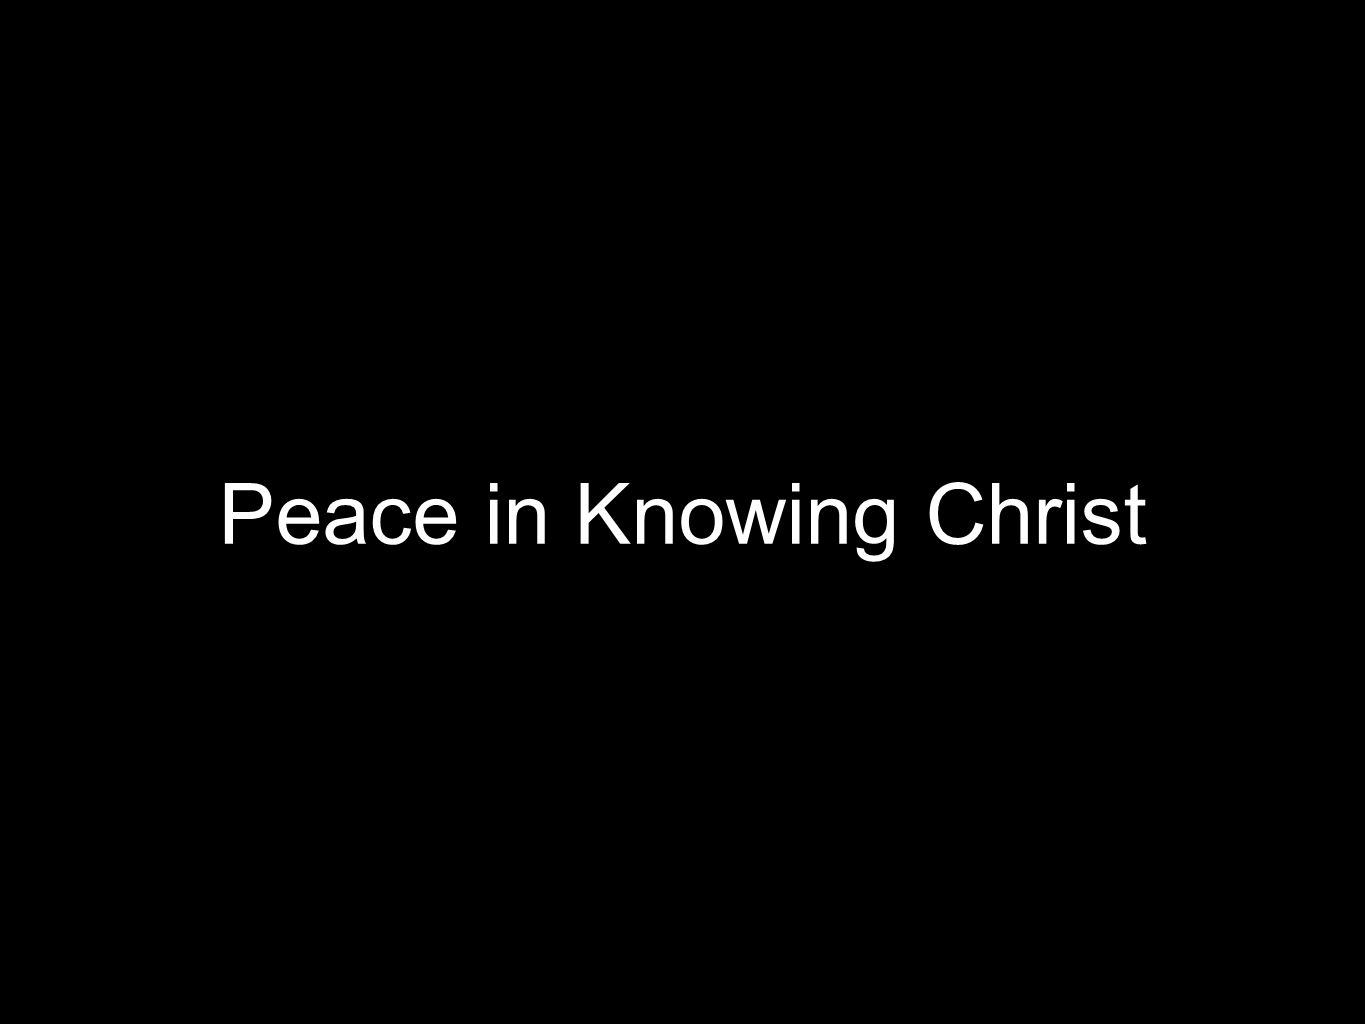 Peace in Knowing Christ